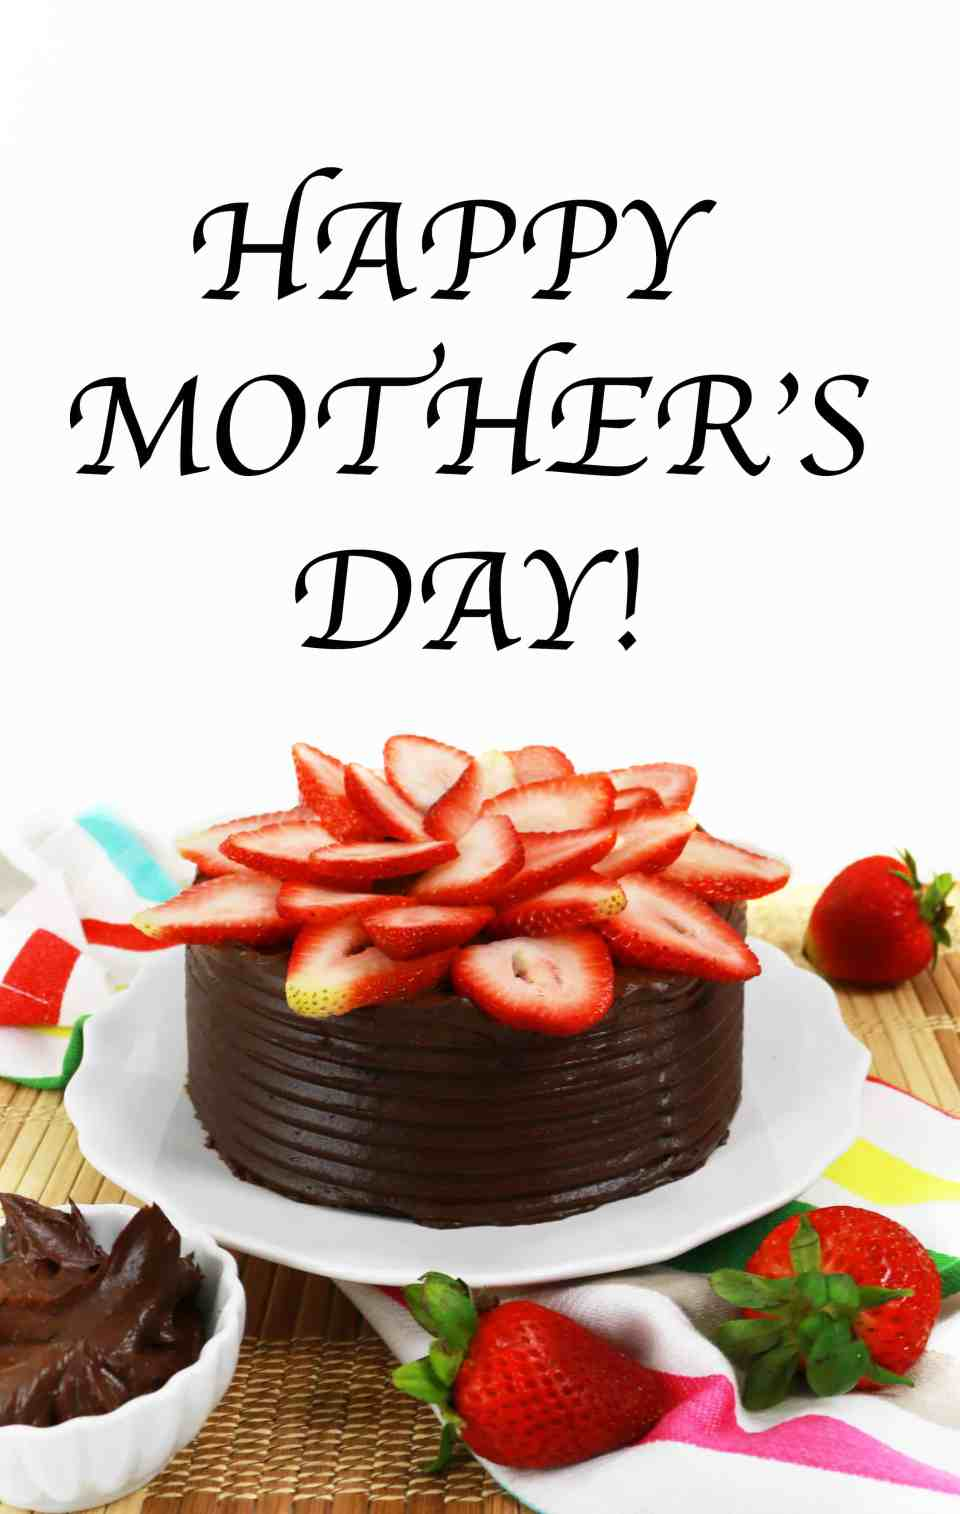 mother's day cake, cake for mother's day, mothers day cake ideas, mother's day desserts, happy mothers day cake